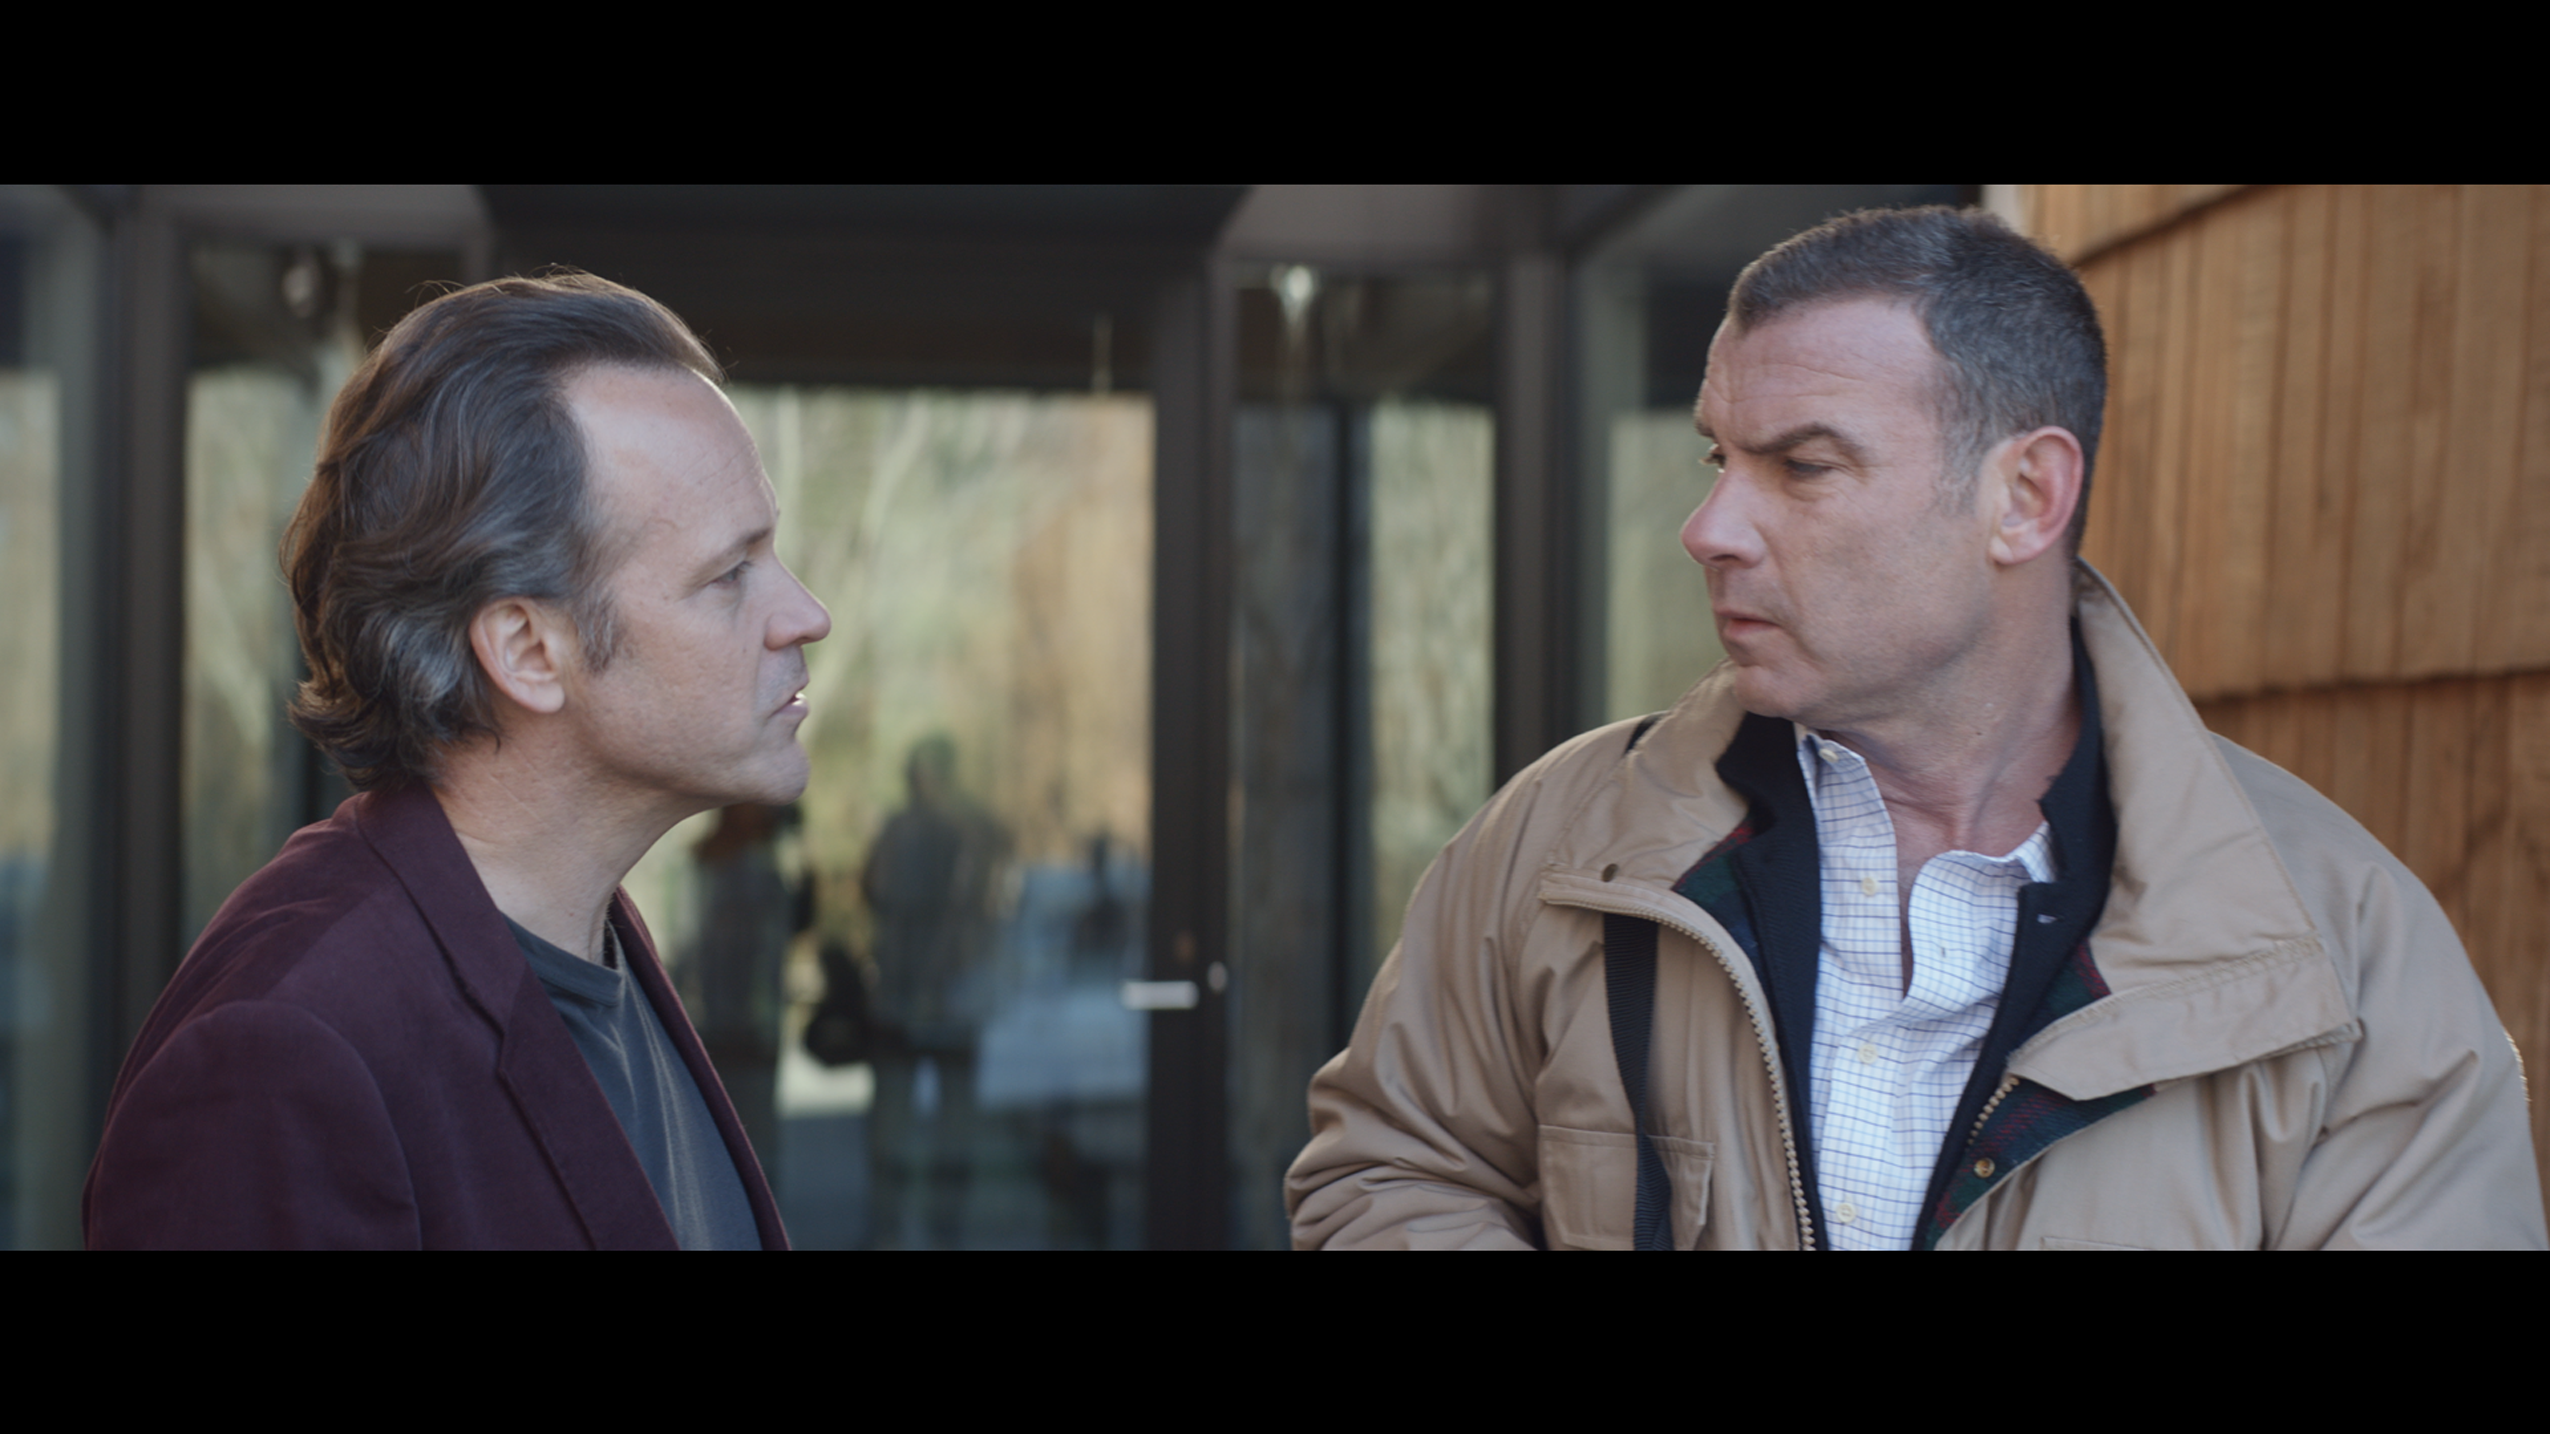 A still from the film, where two middle-aged white men face each other in front of a glass wall. One is frowning slightly and they look as if they are in the middle of a conversation.